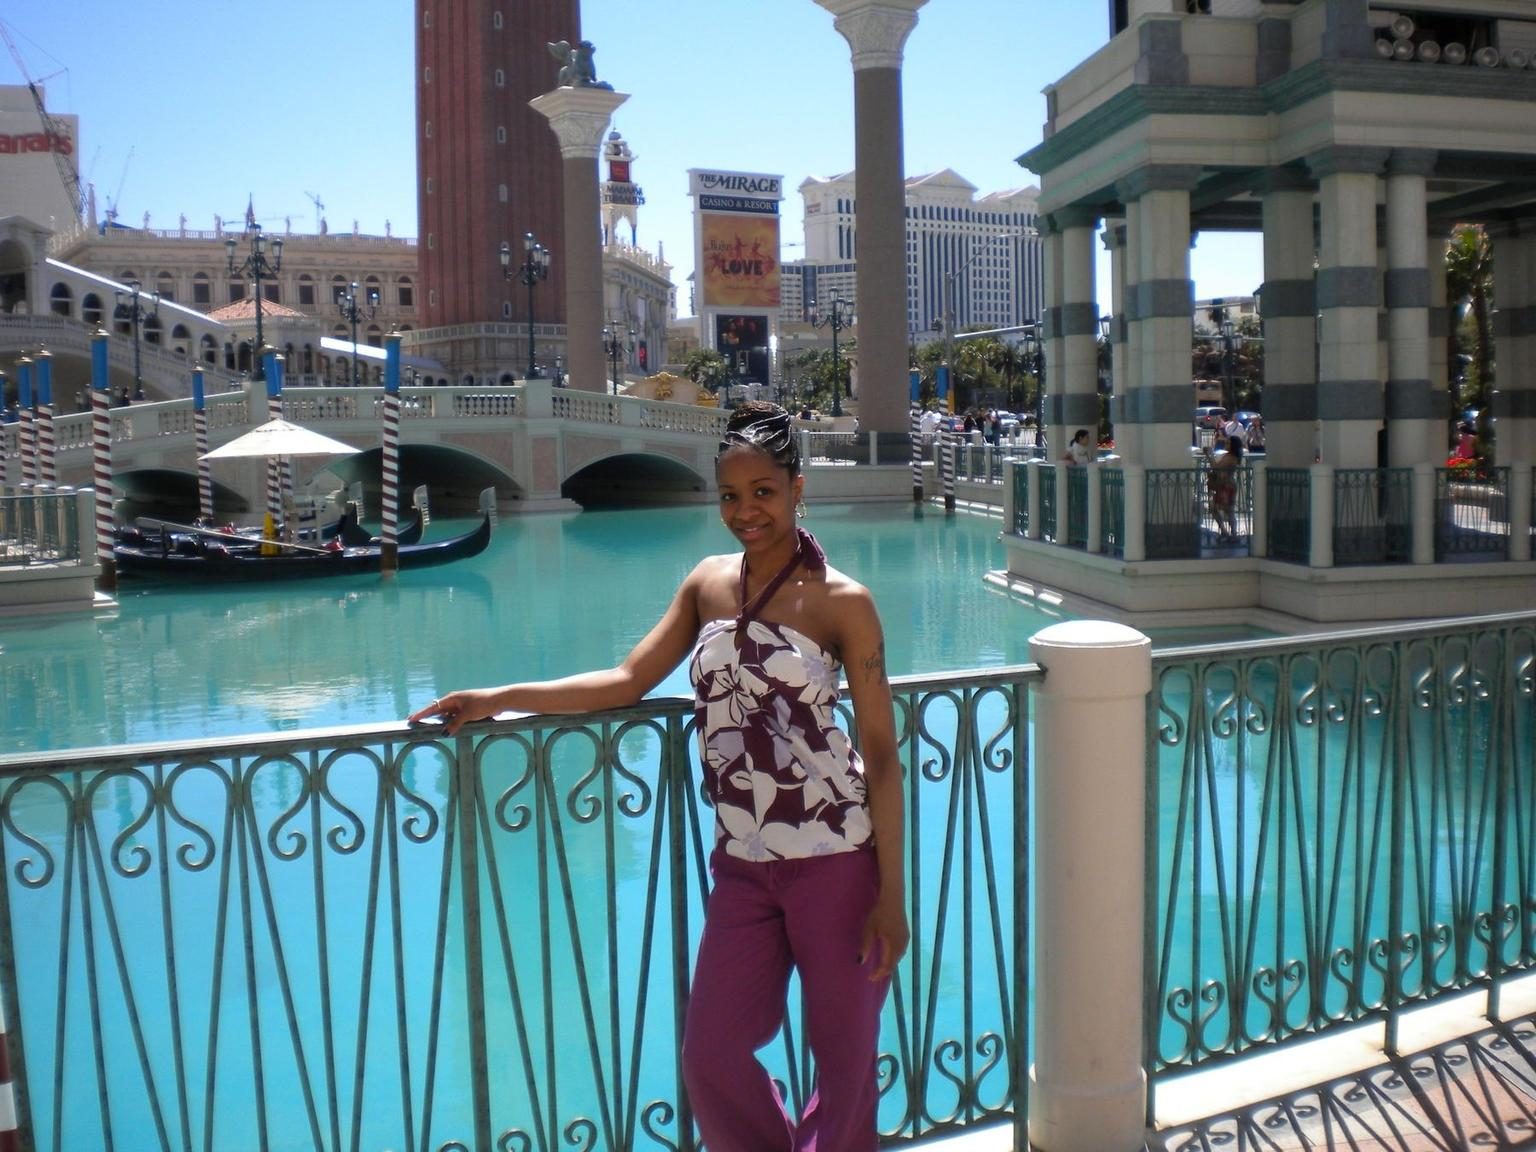 Outside the Venetian